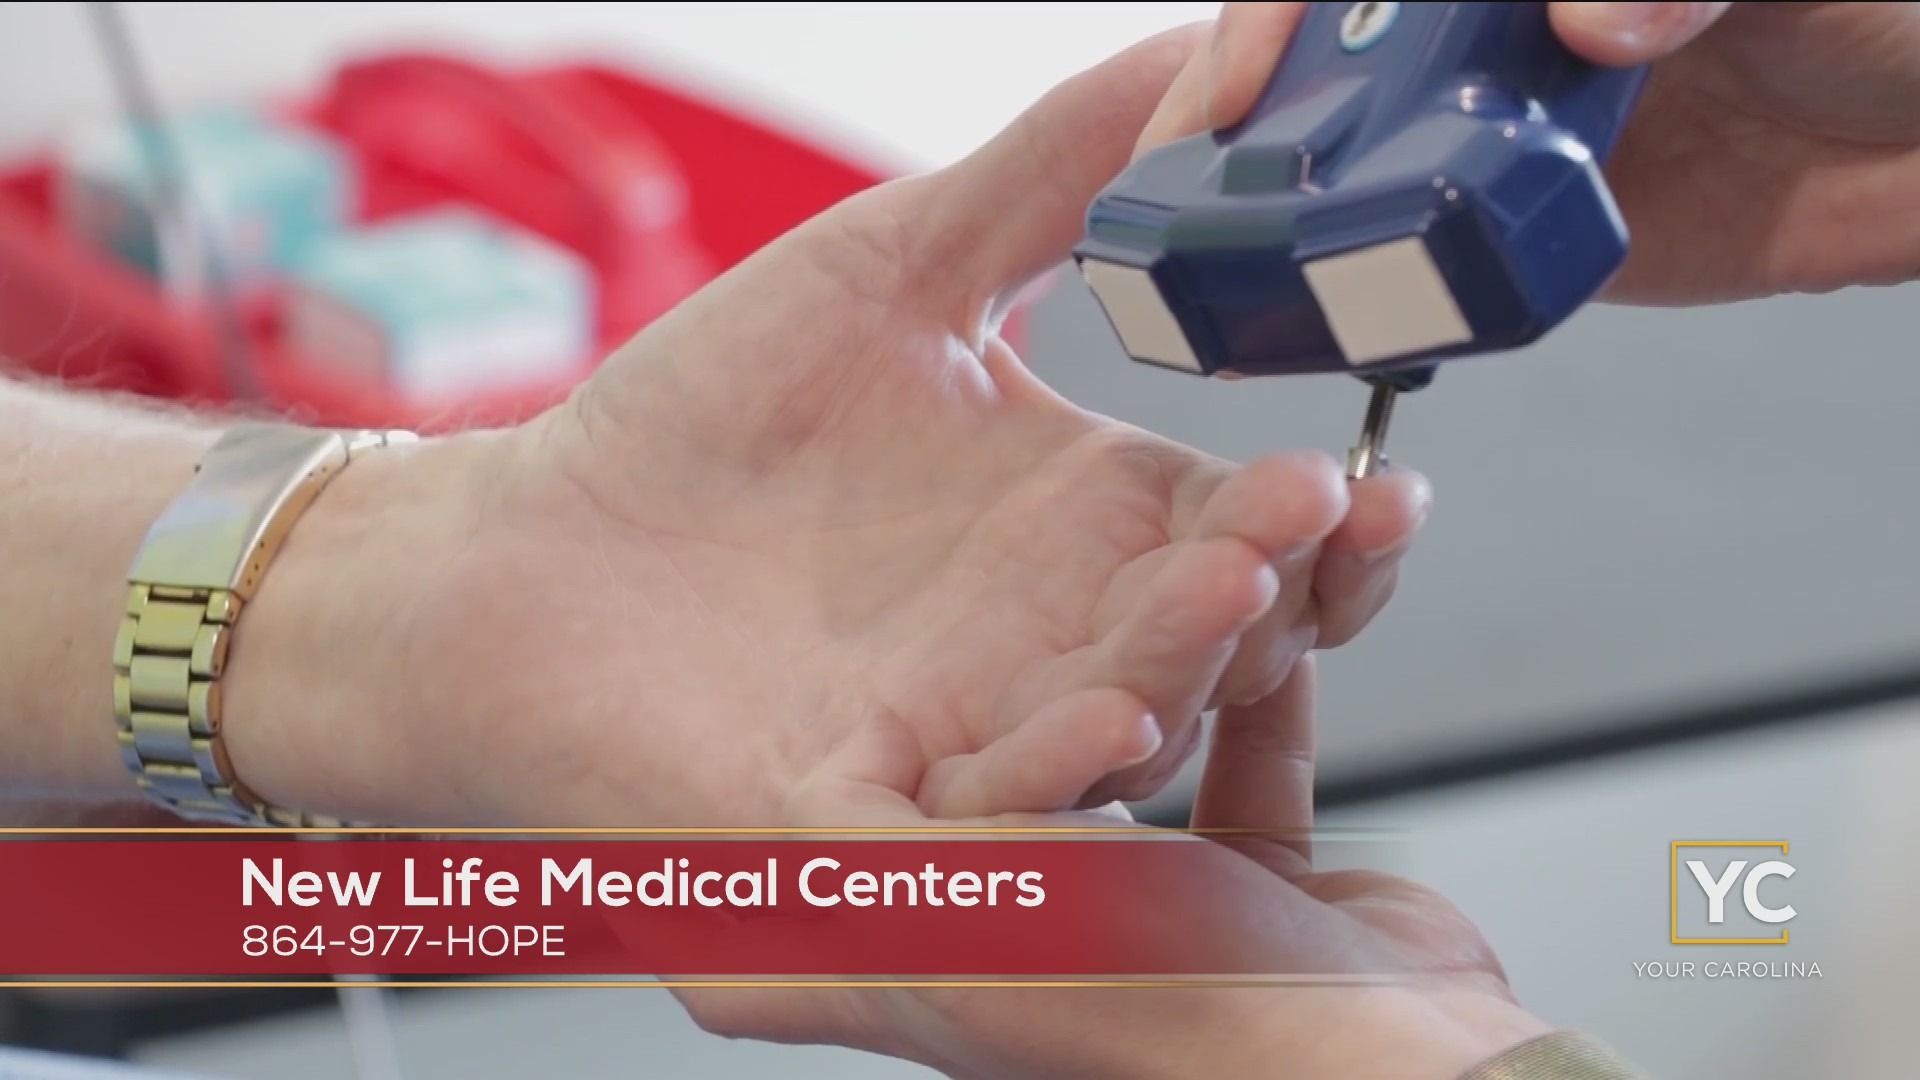 Learn More About New Life Medical Centers